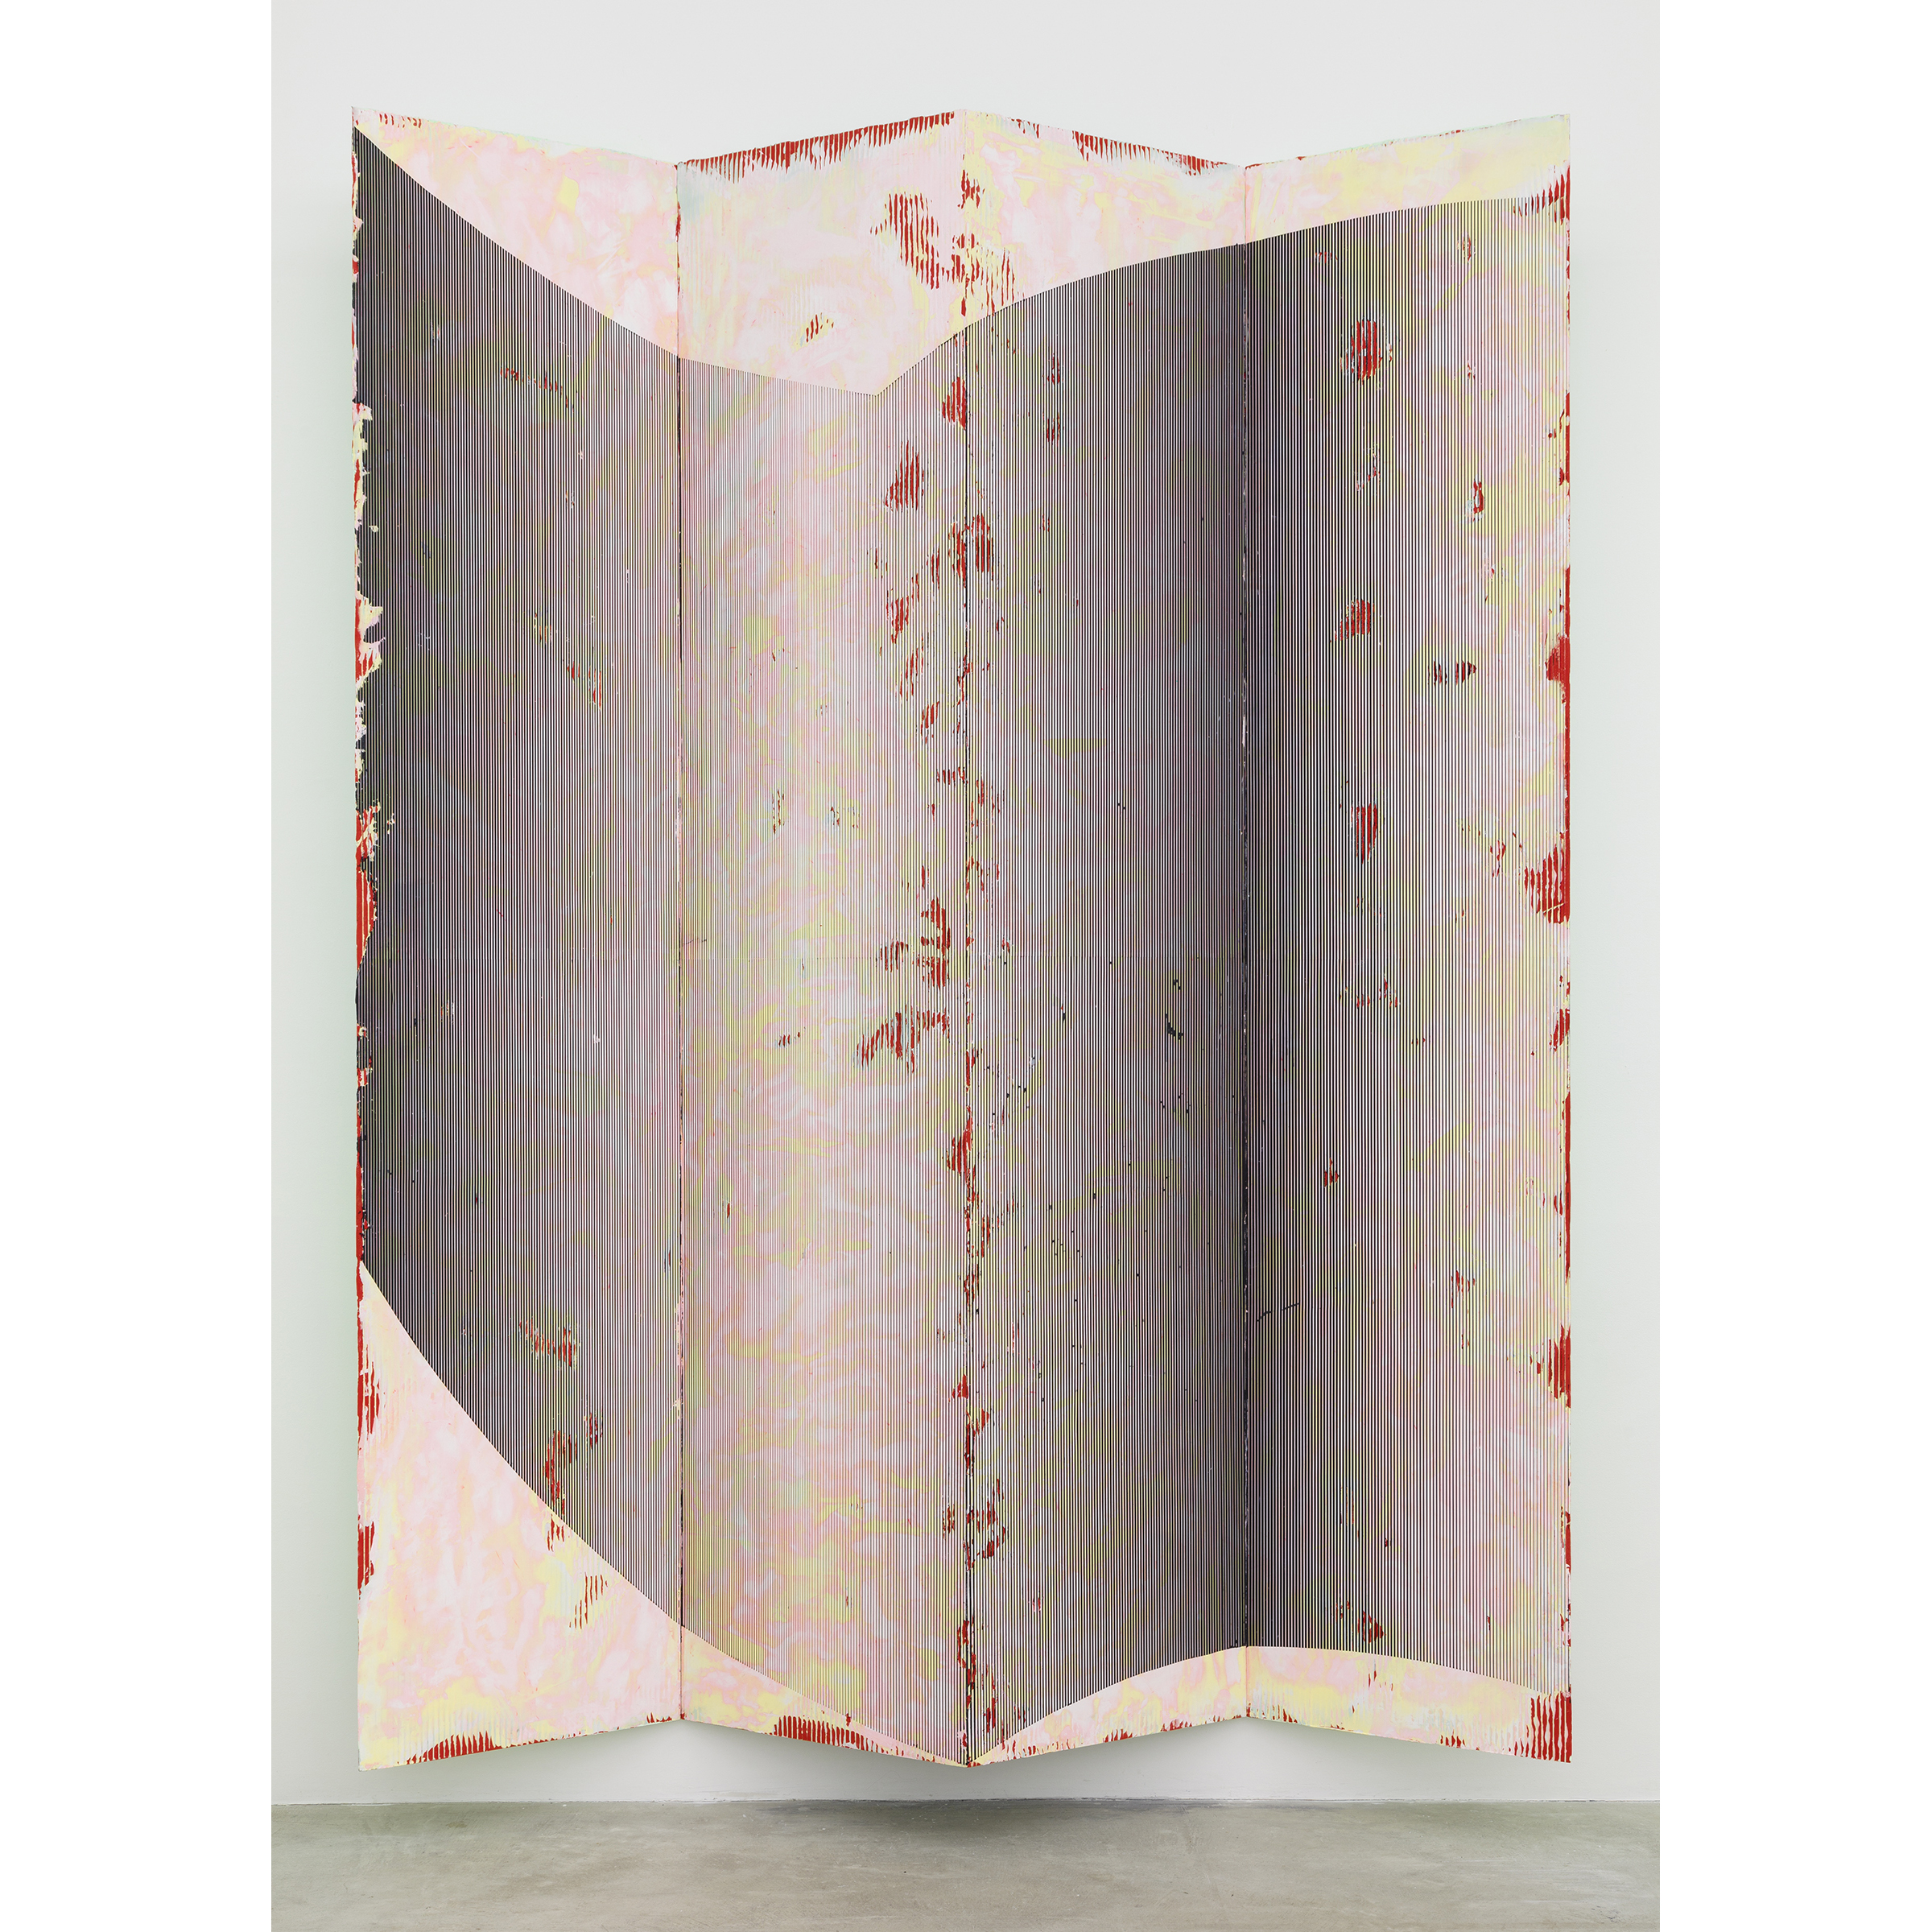 Nicolas Roggy, Untitled , 2014,primer, modeling paste, pigment on PVC,110.2 x 80.8 x 12.2 in